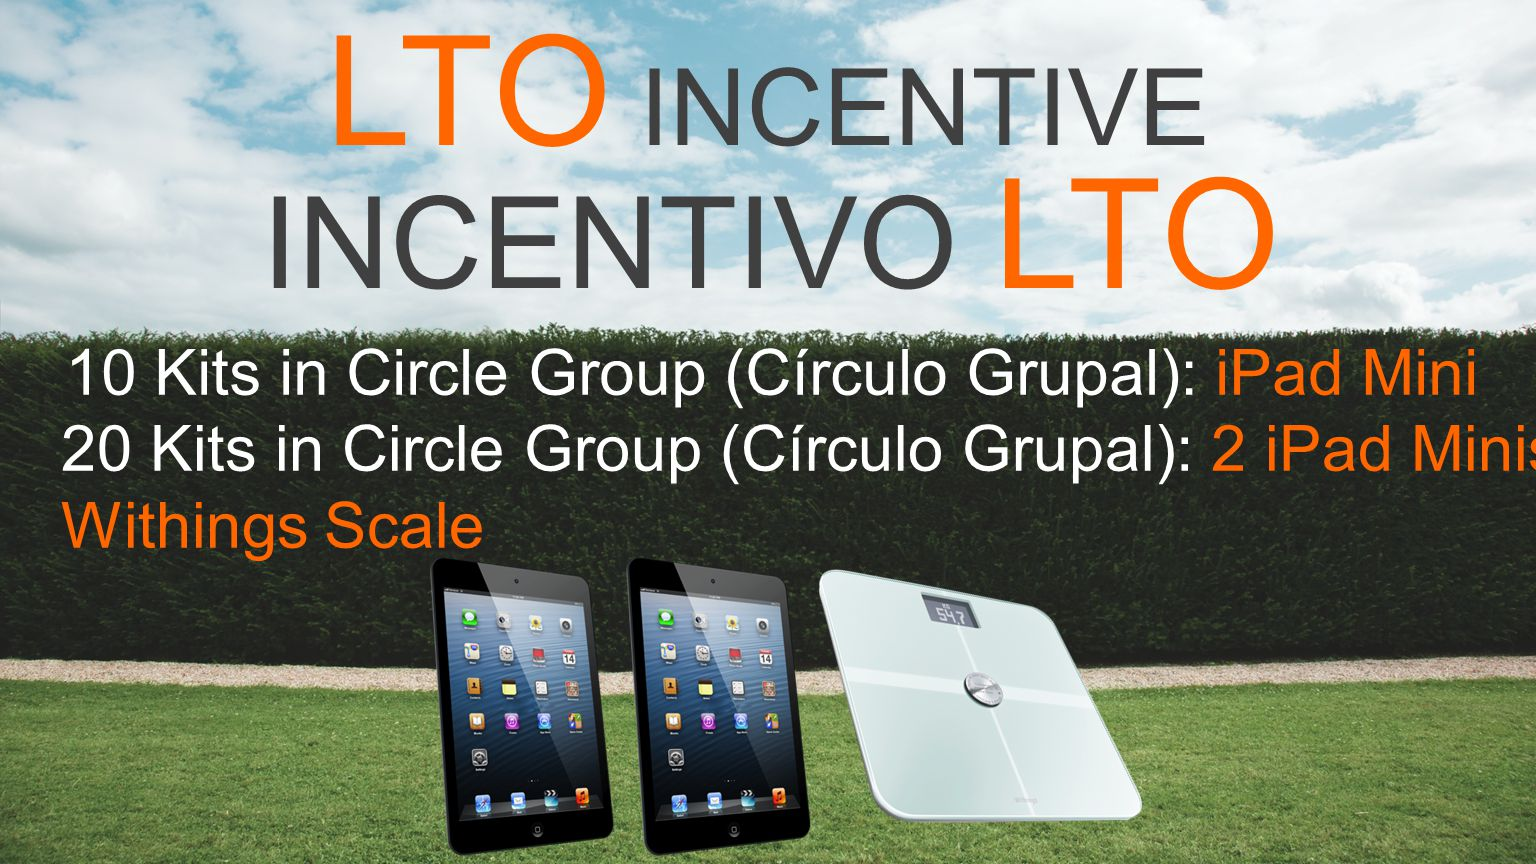 LTO INCENTIVE 10 Kits in Circle Group (Círculo Grupal): iPad Mini 20 Kits in Circle Group (Círculo Grupal): 2 iPad Minis & Withings Scale INCENTIVO LTO